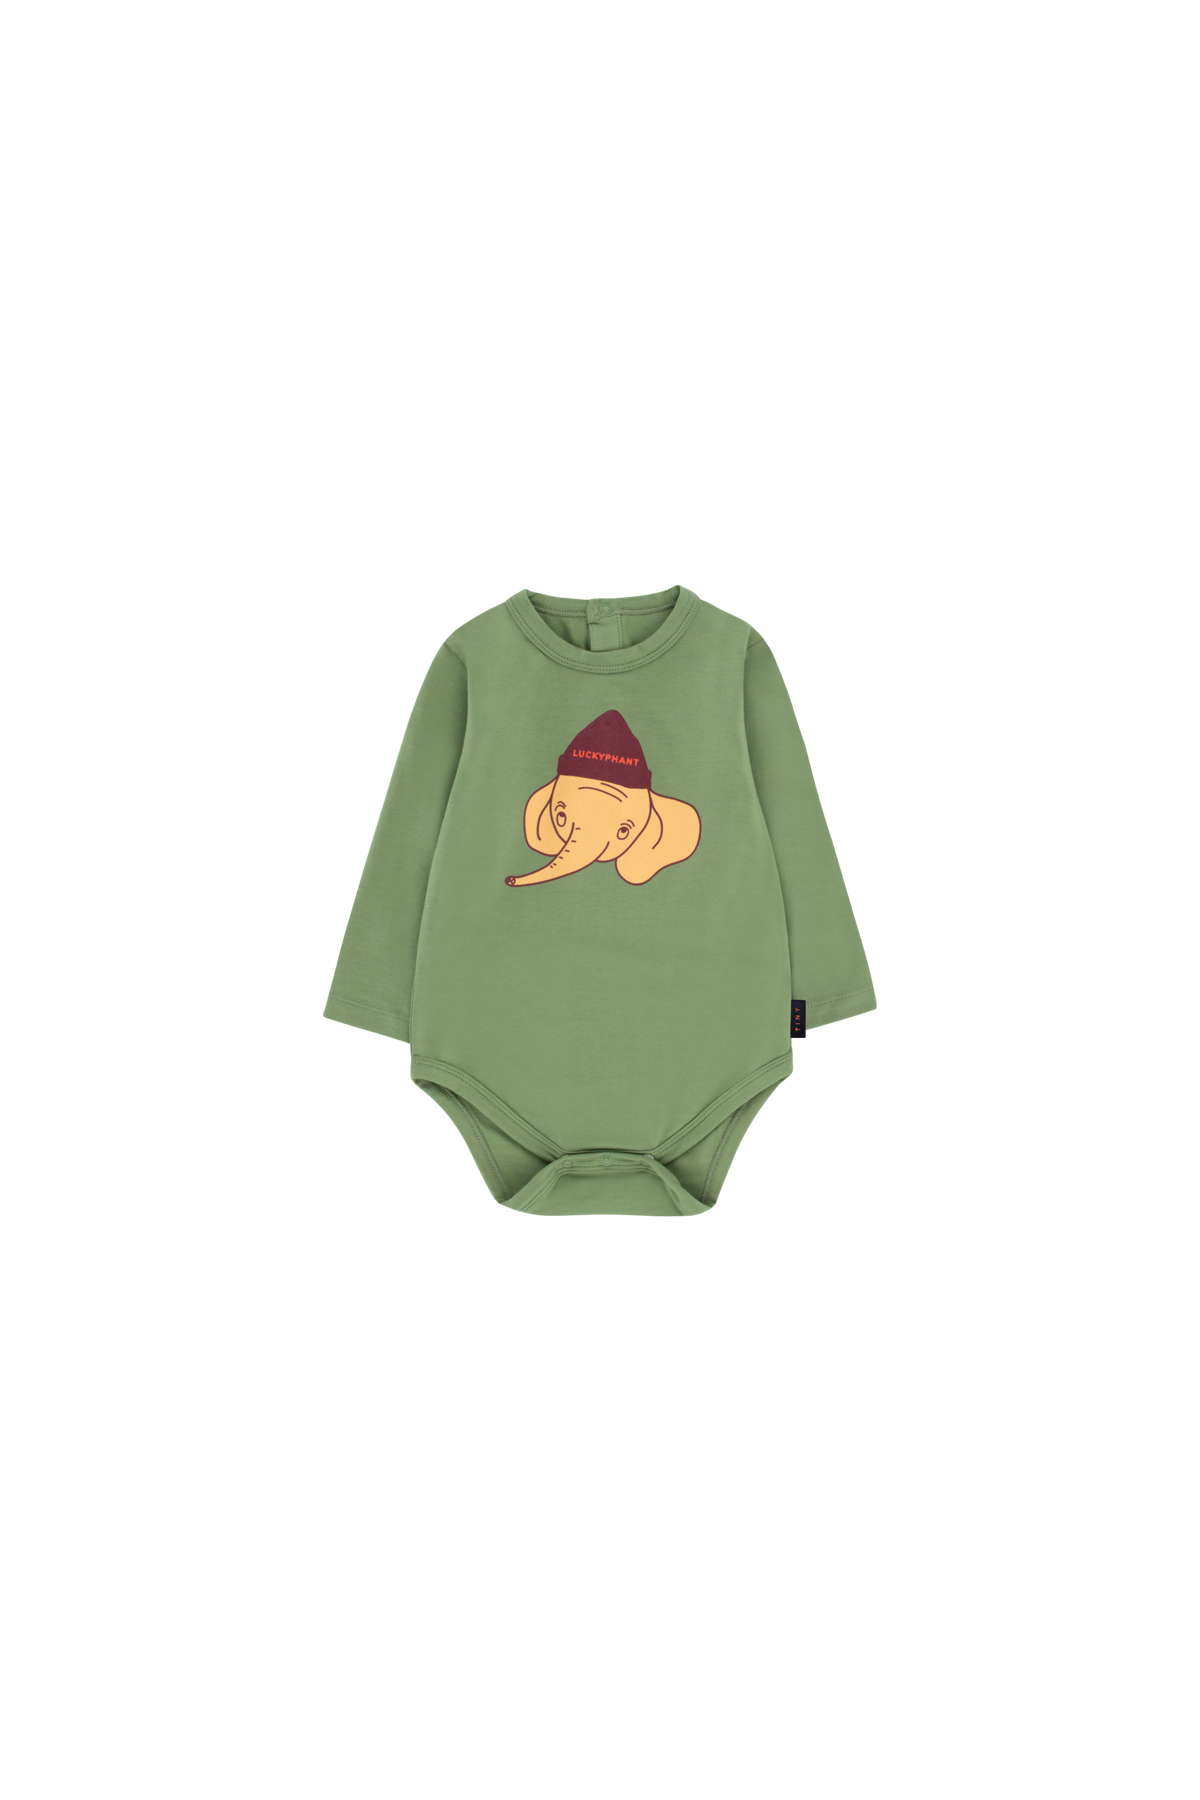 《TINYCOTTONS 2019AW》LUCKYPHANT LS BODY / green wood × sand / 6・9M